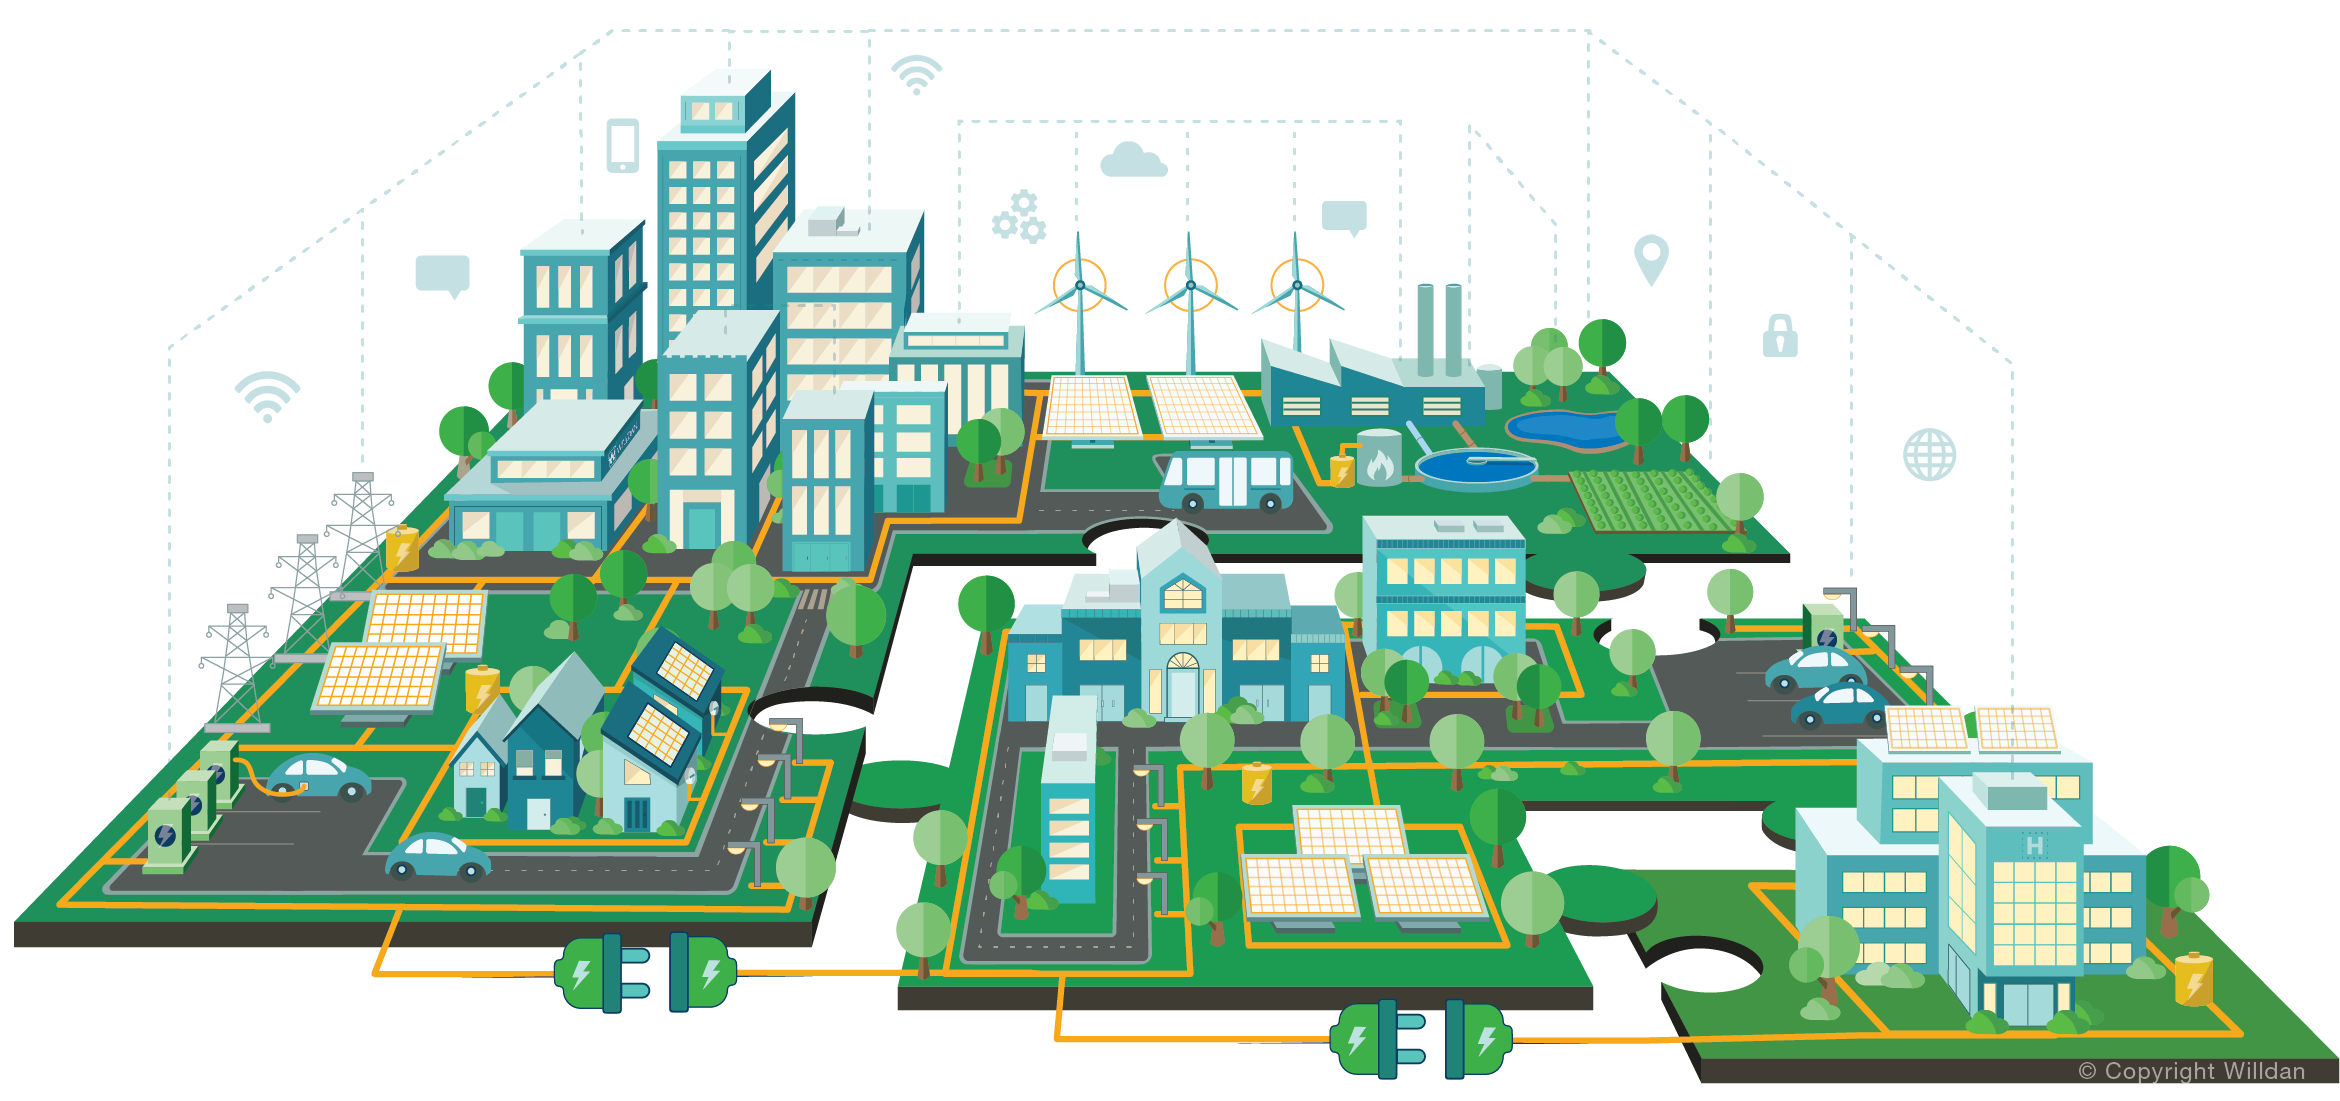 https://www.energy.gov/articles/how-microgrids-work